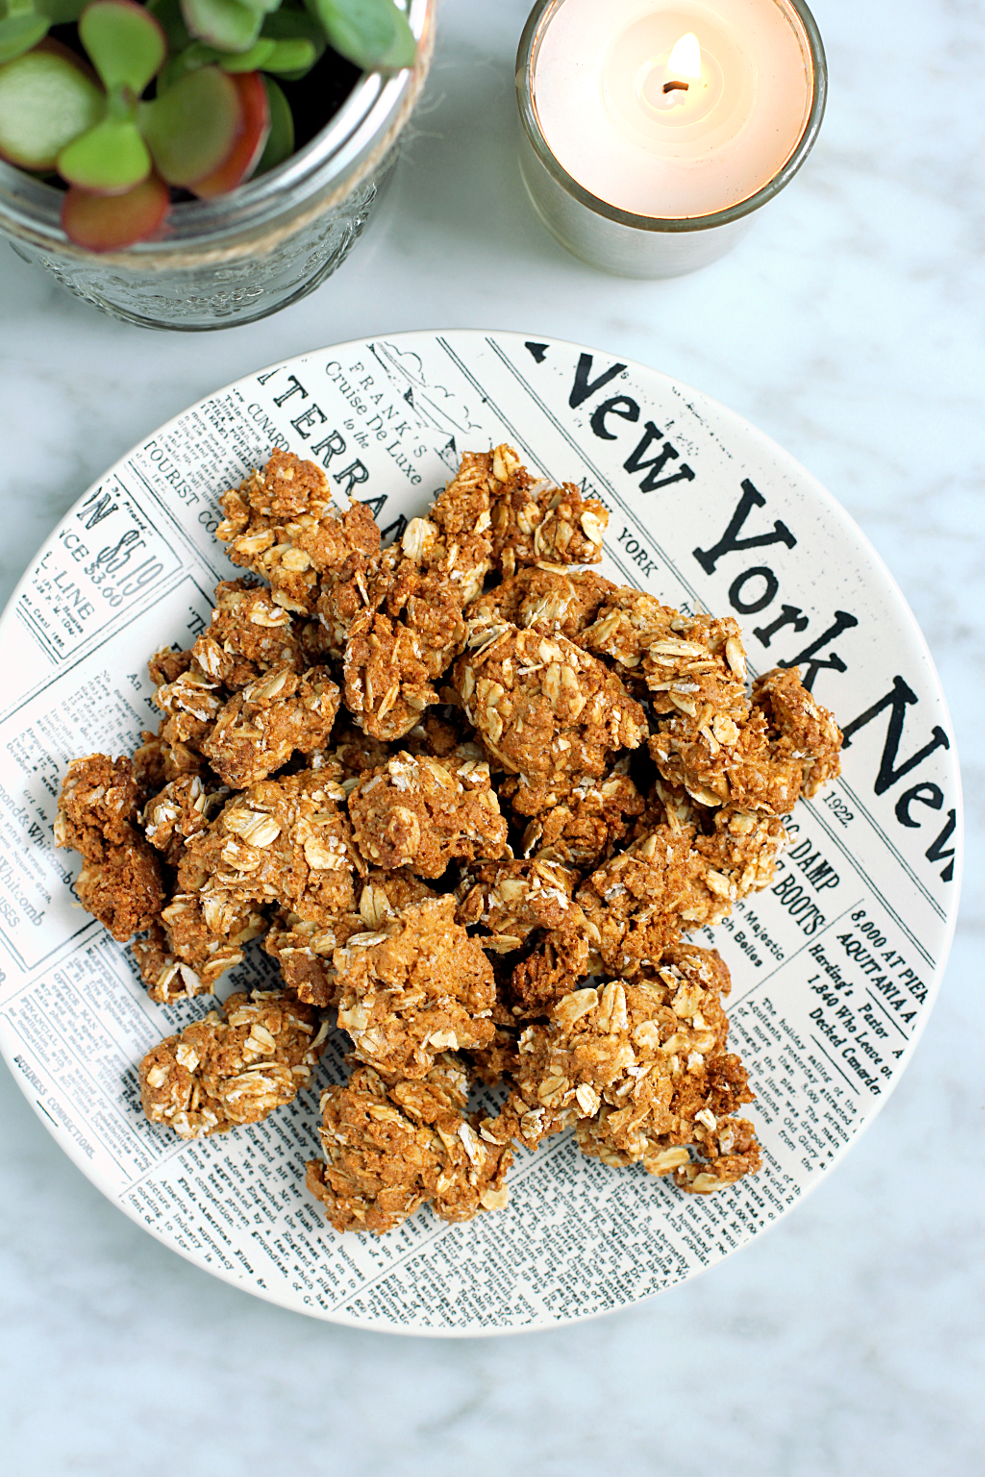 Image of gluten-free peanut butter cookie granola.